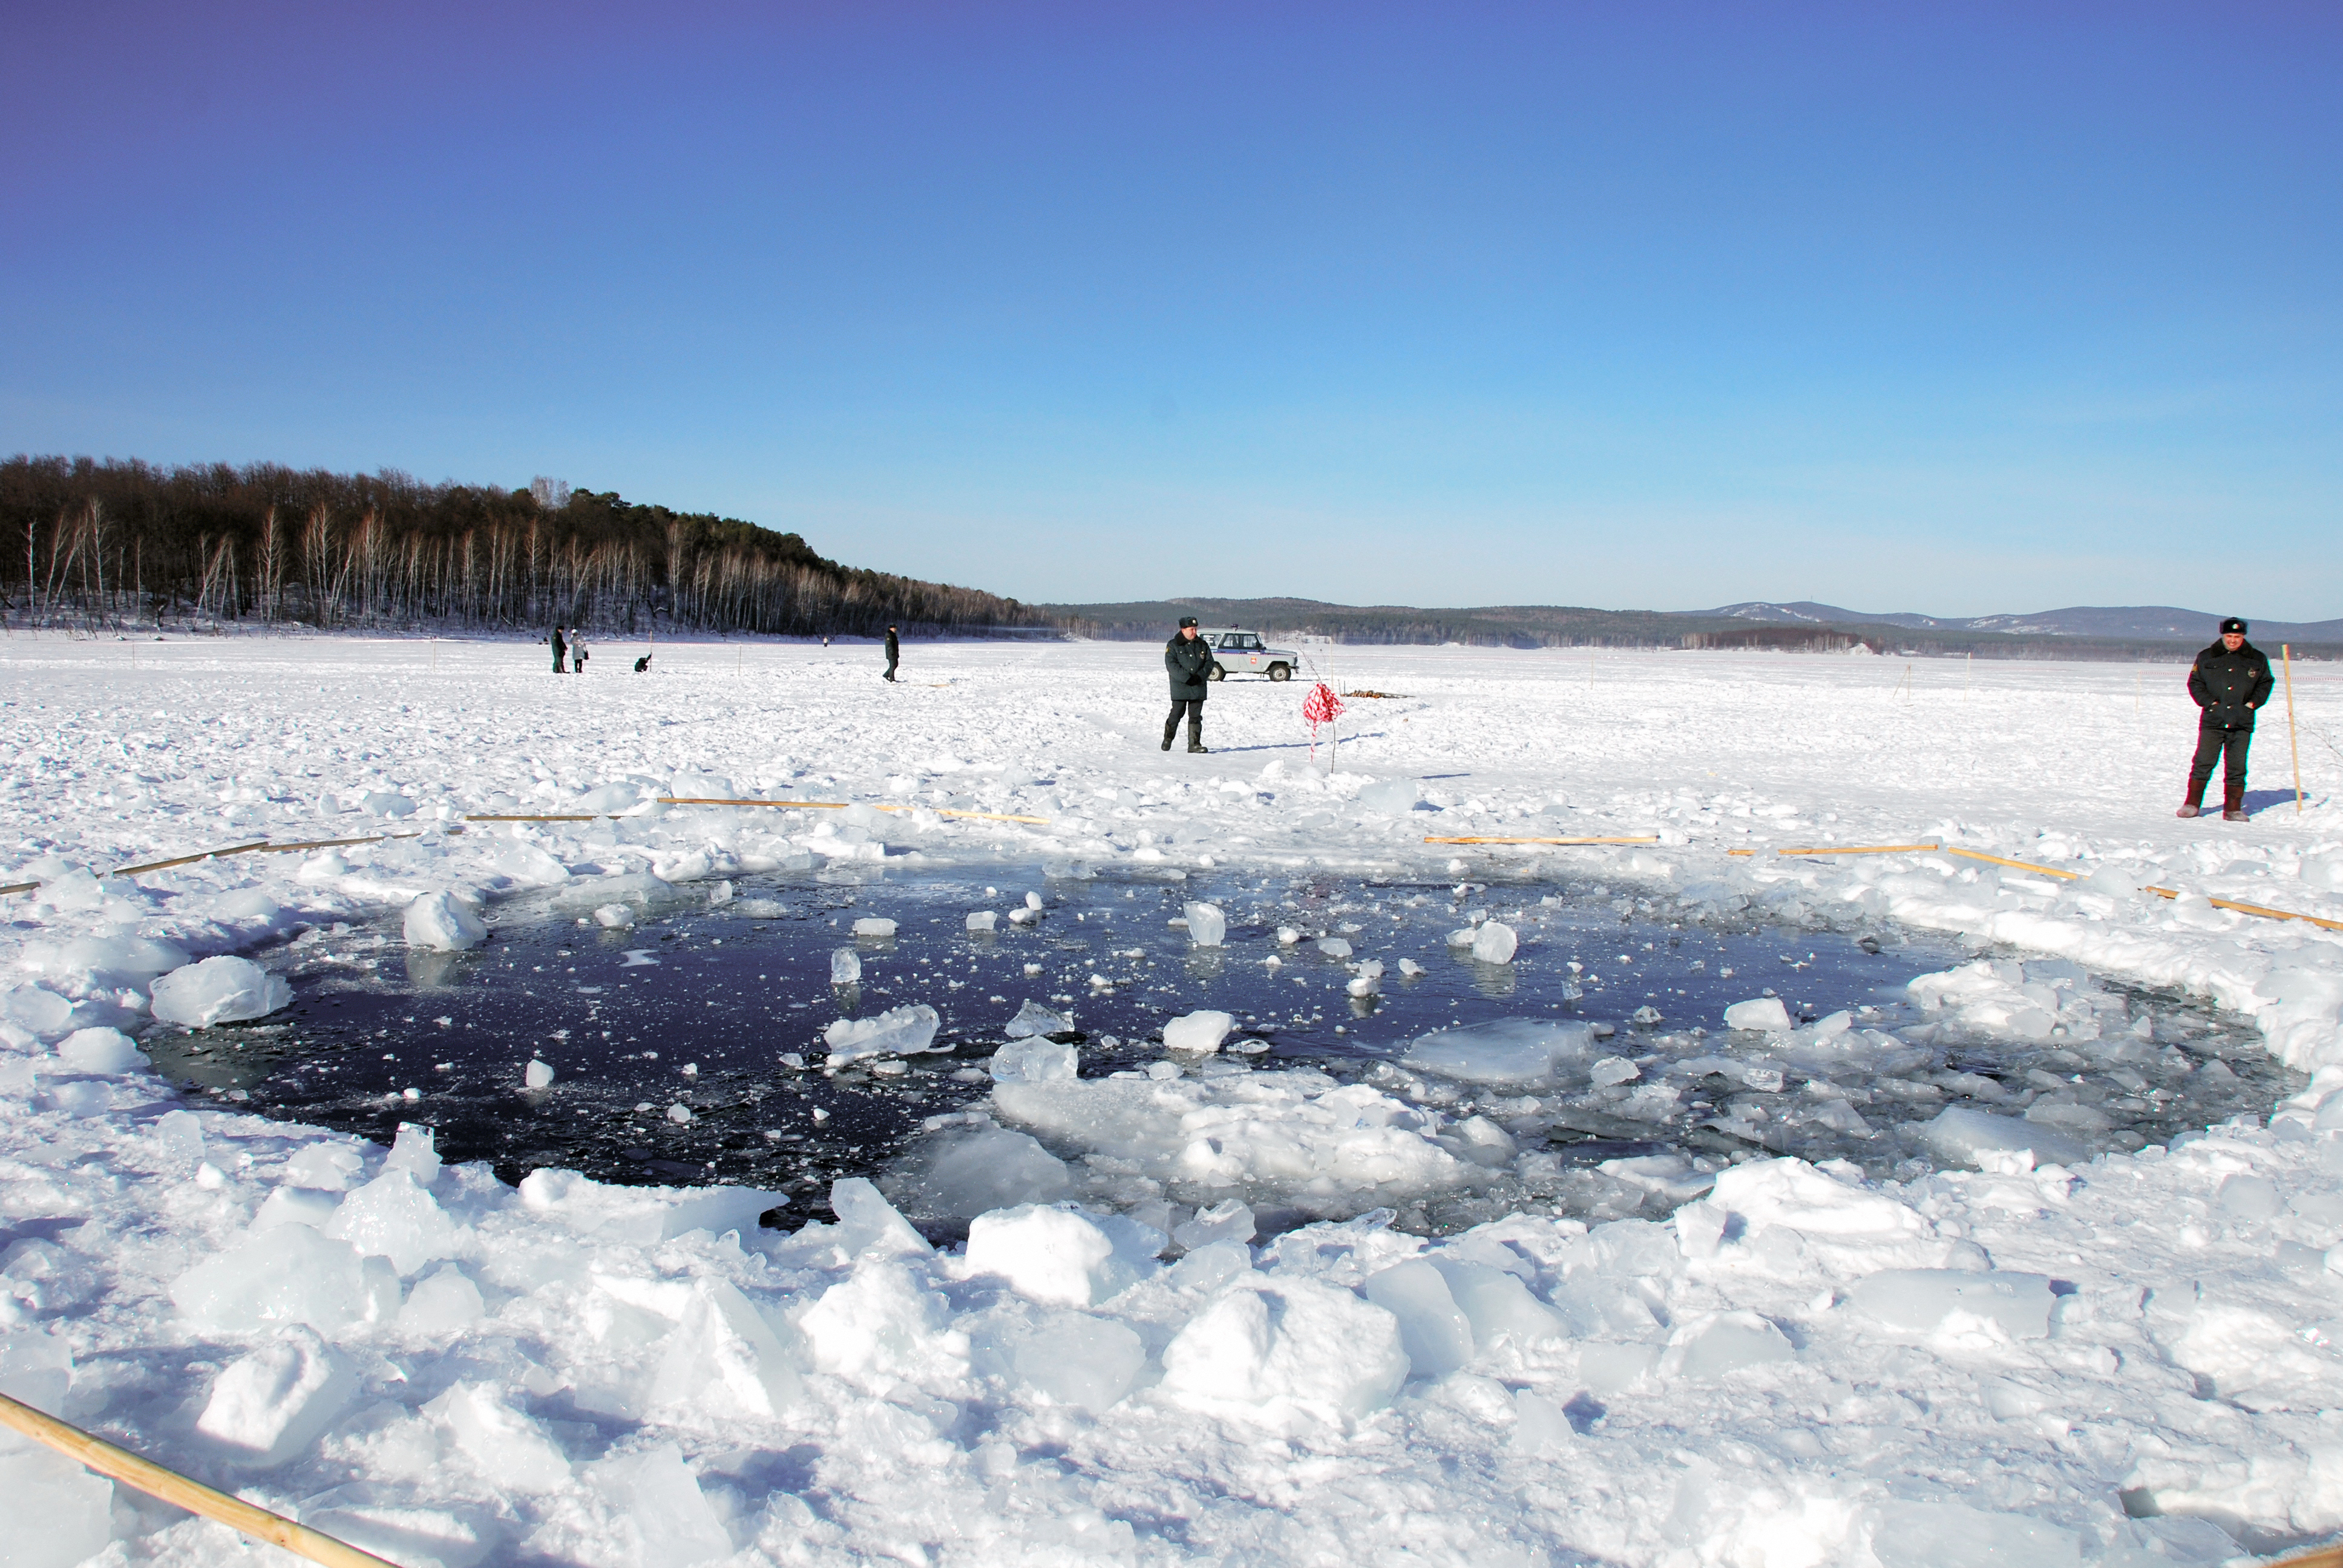 Bullseye: A hole left in a frozen lake in Chelyabinsk, thought to have been punched out by a fragment of the meteor that struck in 2013.